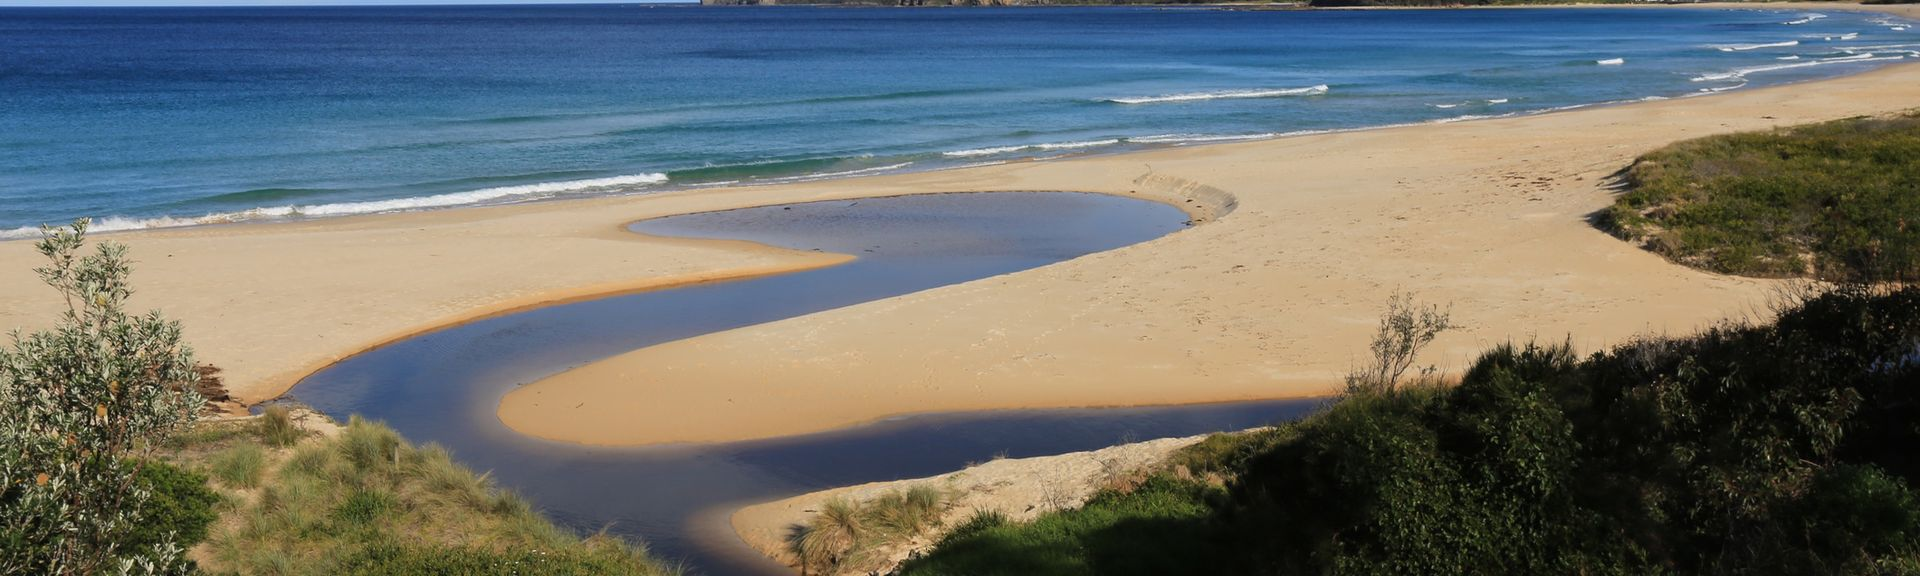 Mollymook, Ulladulla, New South Wales, Australia